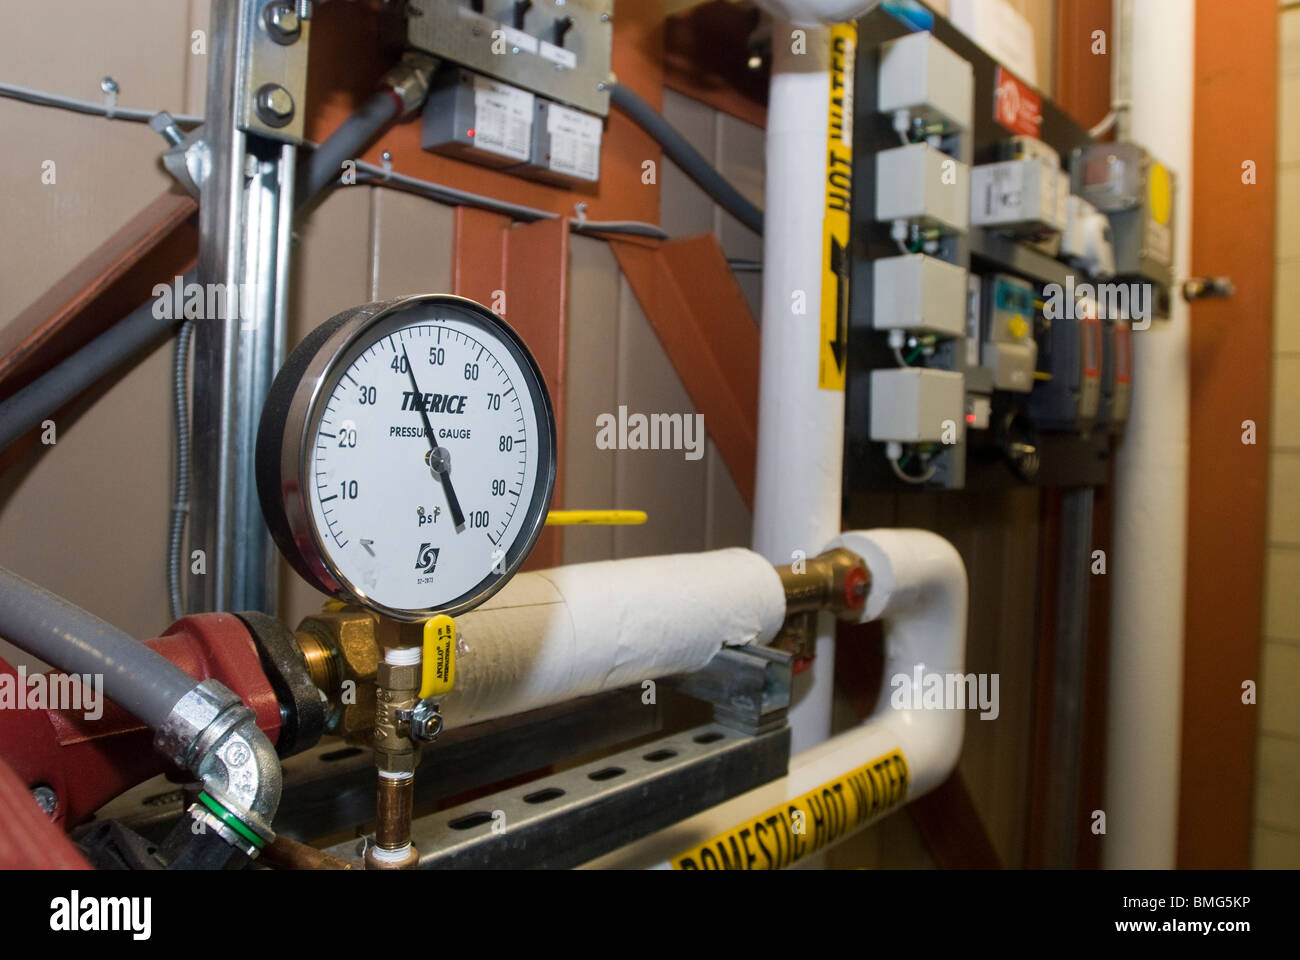 Hot water pressure gauge and control system for the solar thermal system at the Coney Island Train Yard Maintenance - Stock Image